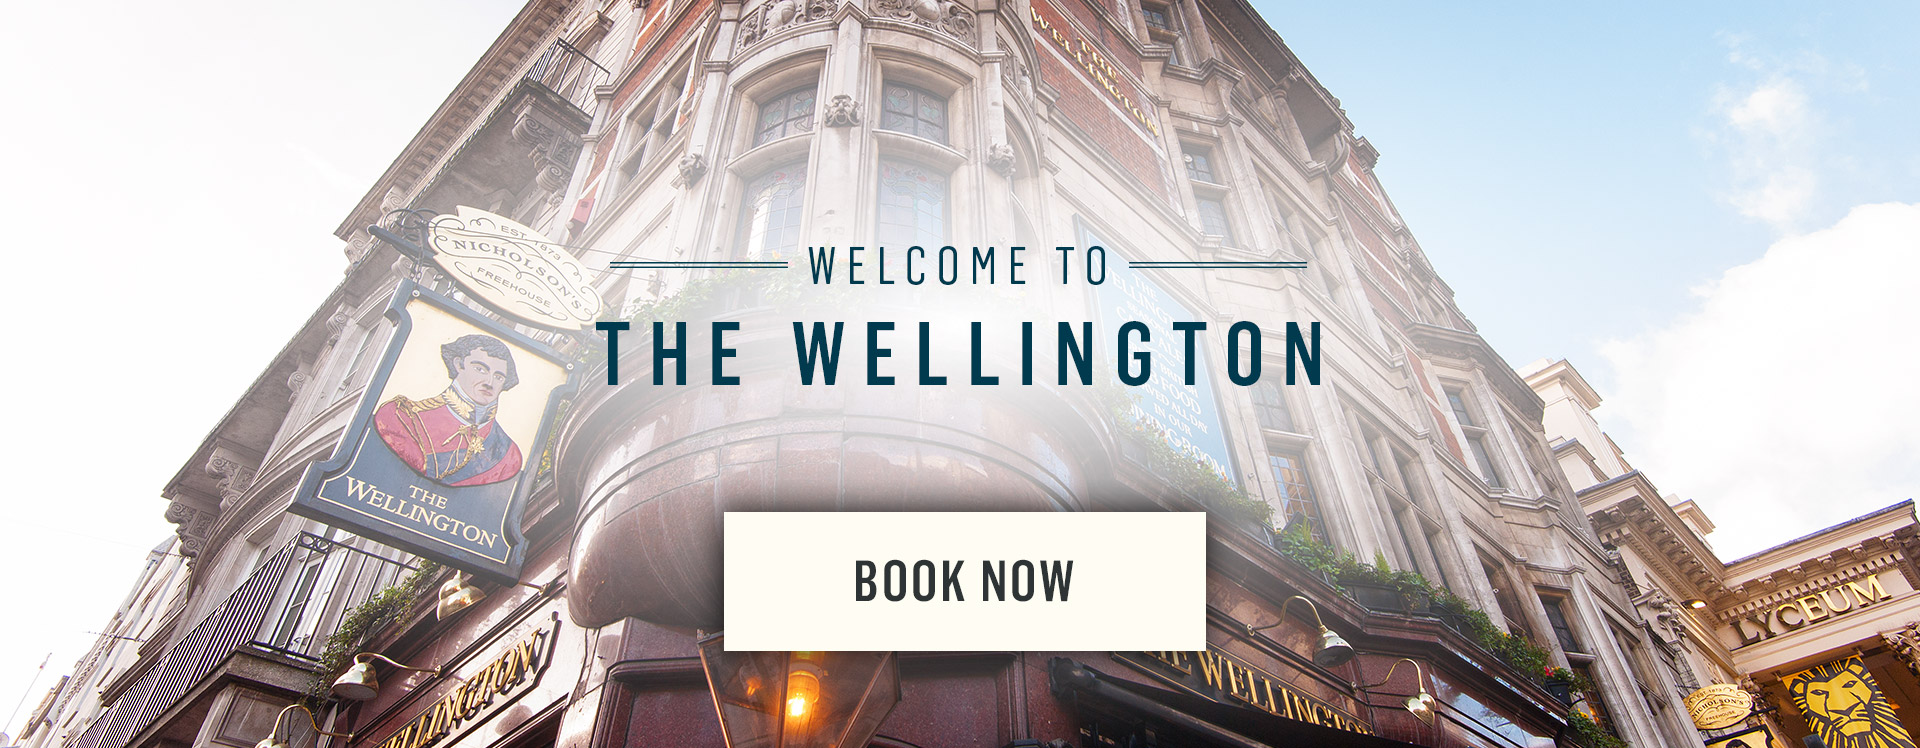 Welcome to The Wellington - Book Now